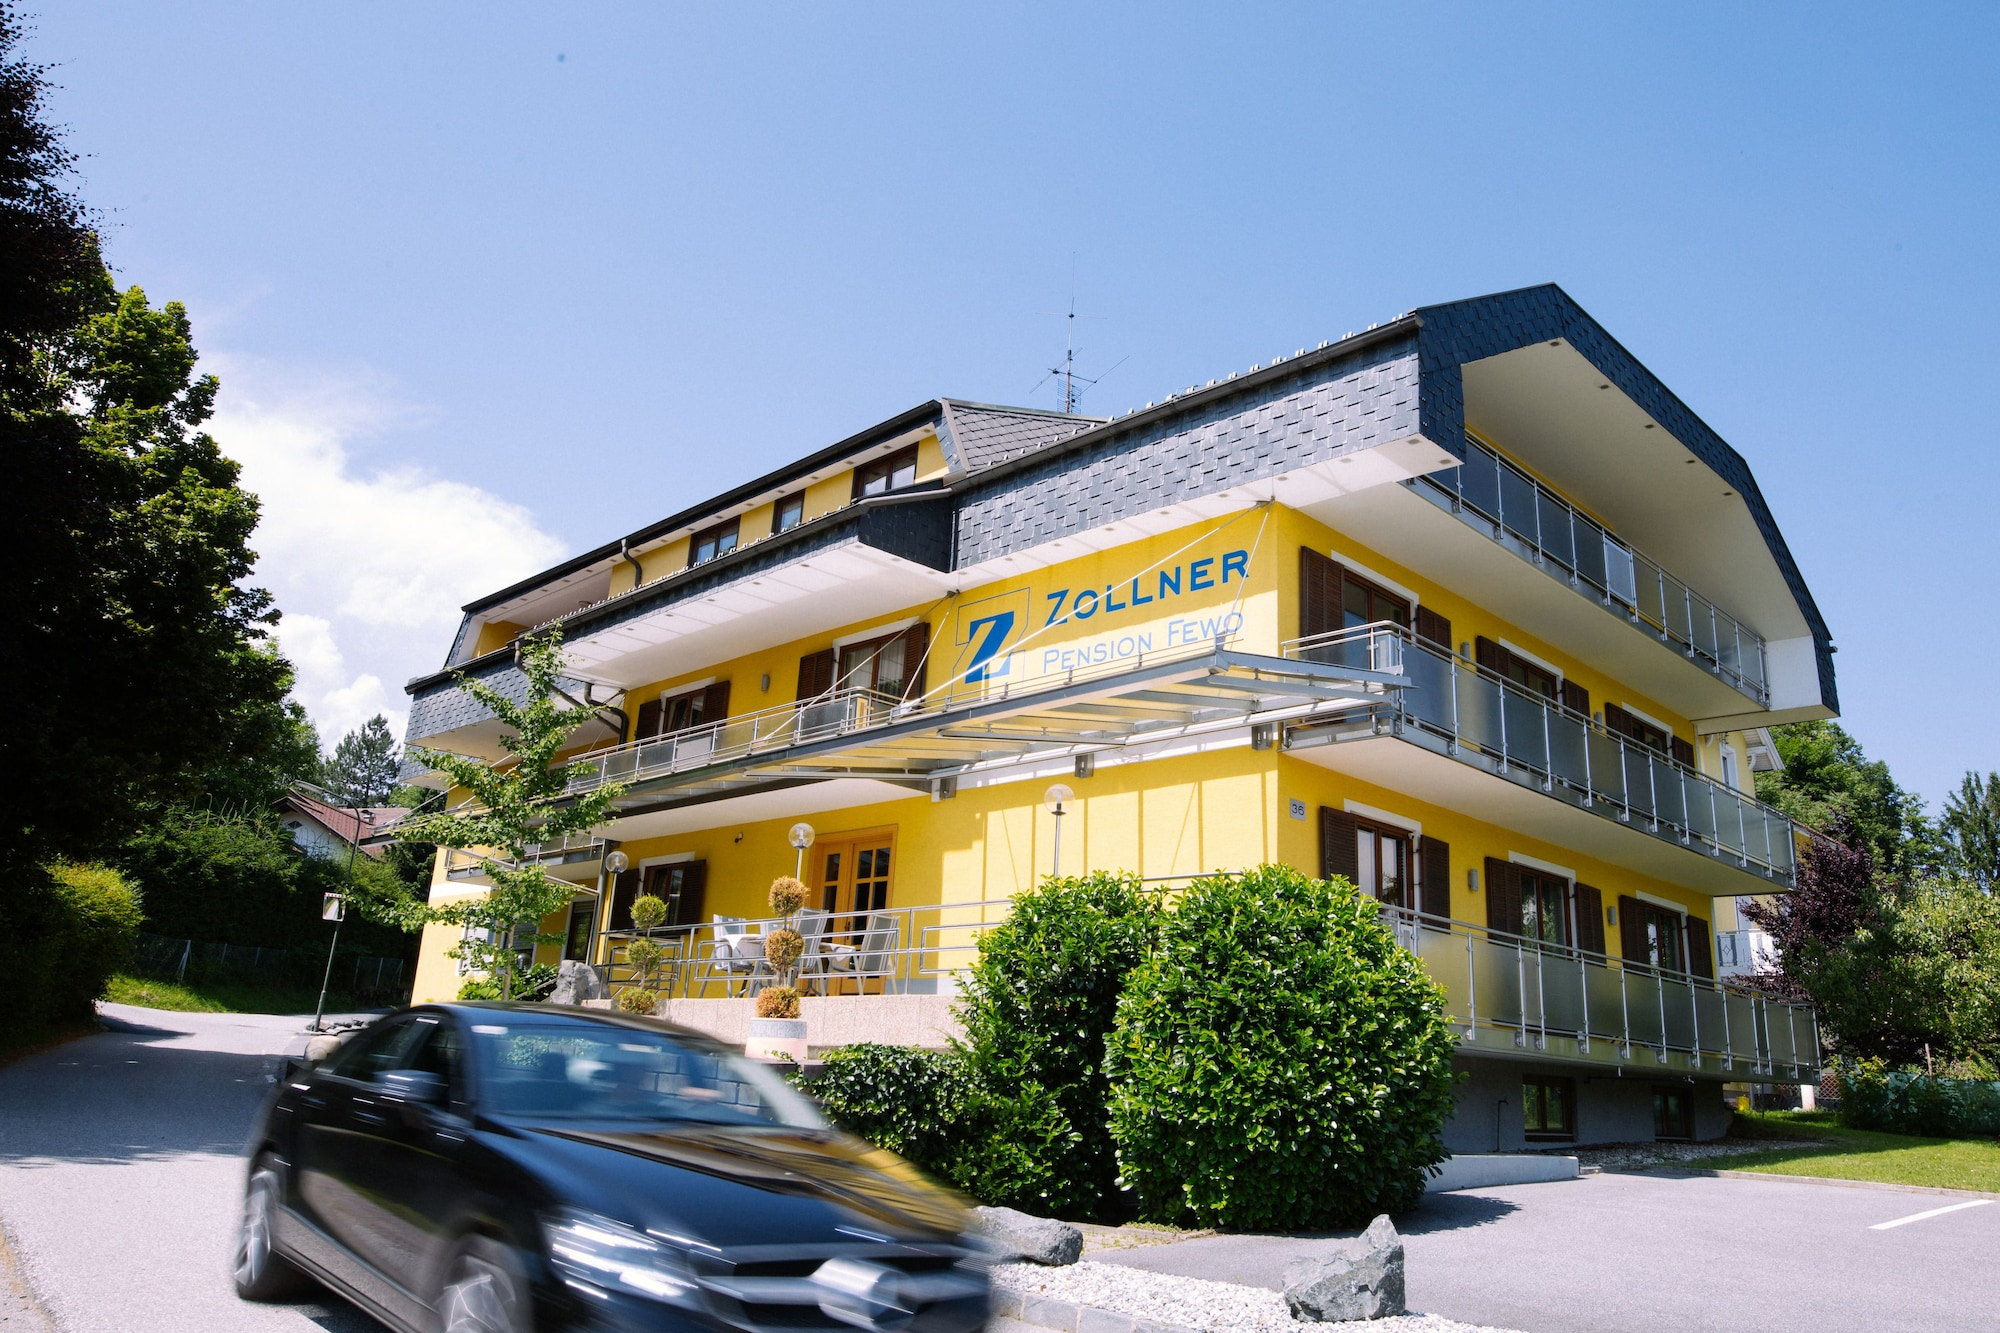 Ferienwohnungen - Appartements Pension Zollner, Villach